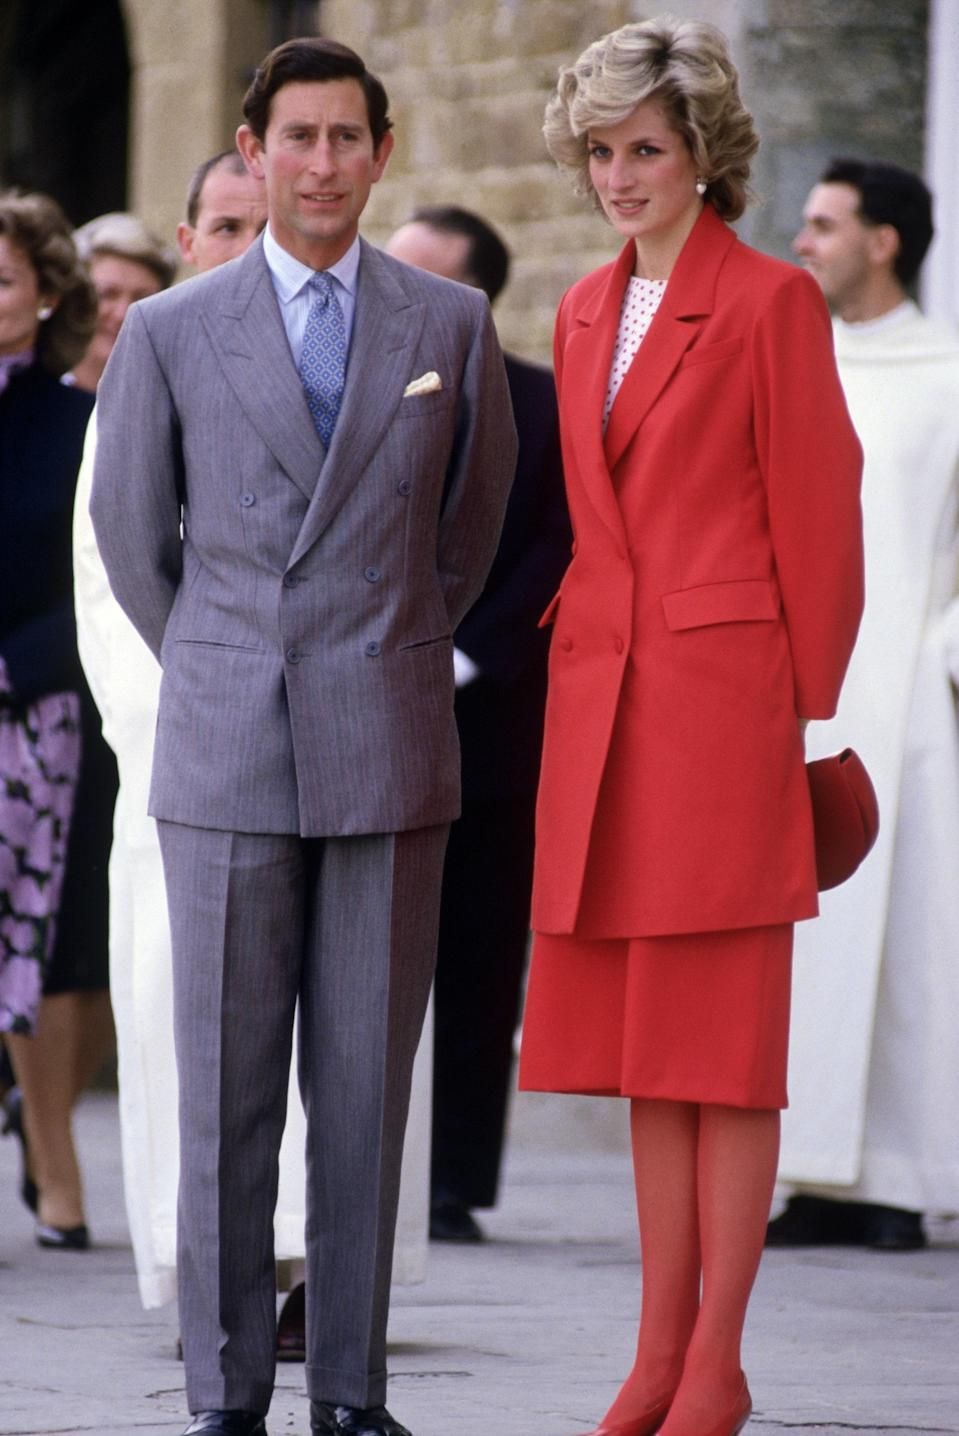 Prince Charles and Princess Diana at a church in Florence, April 23, 1985.